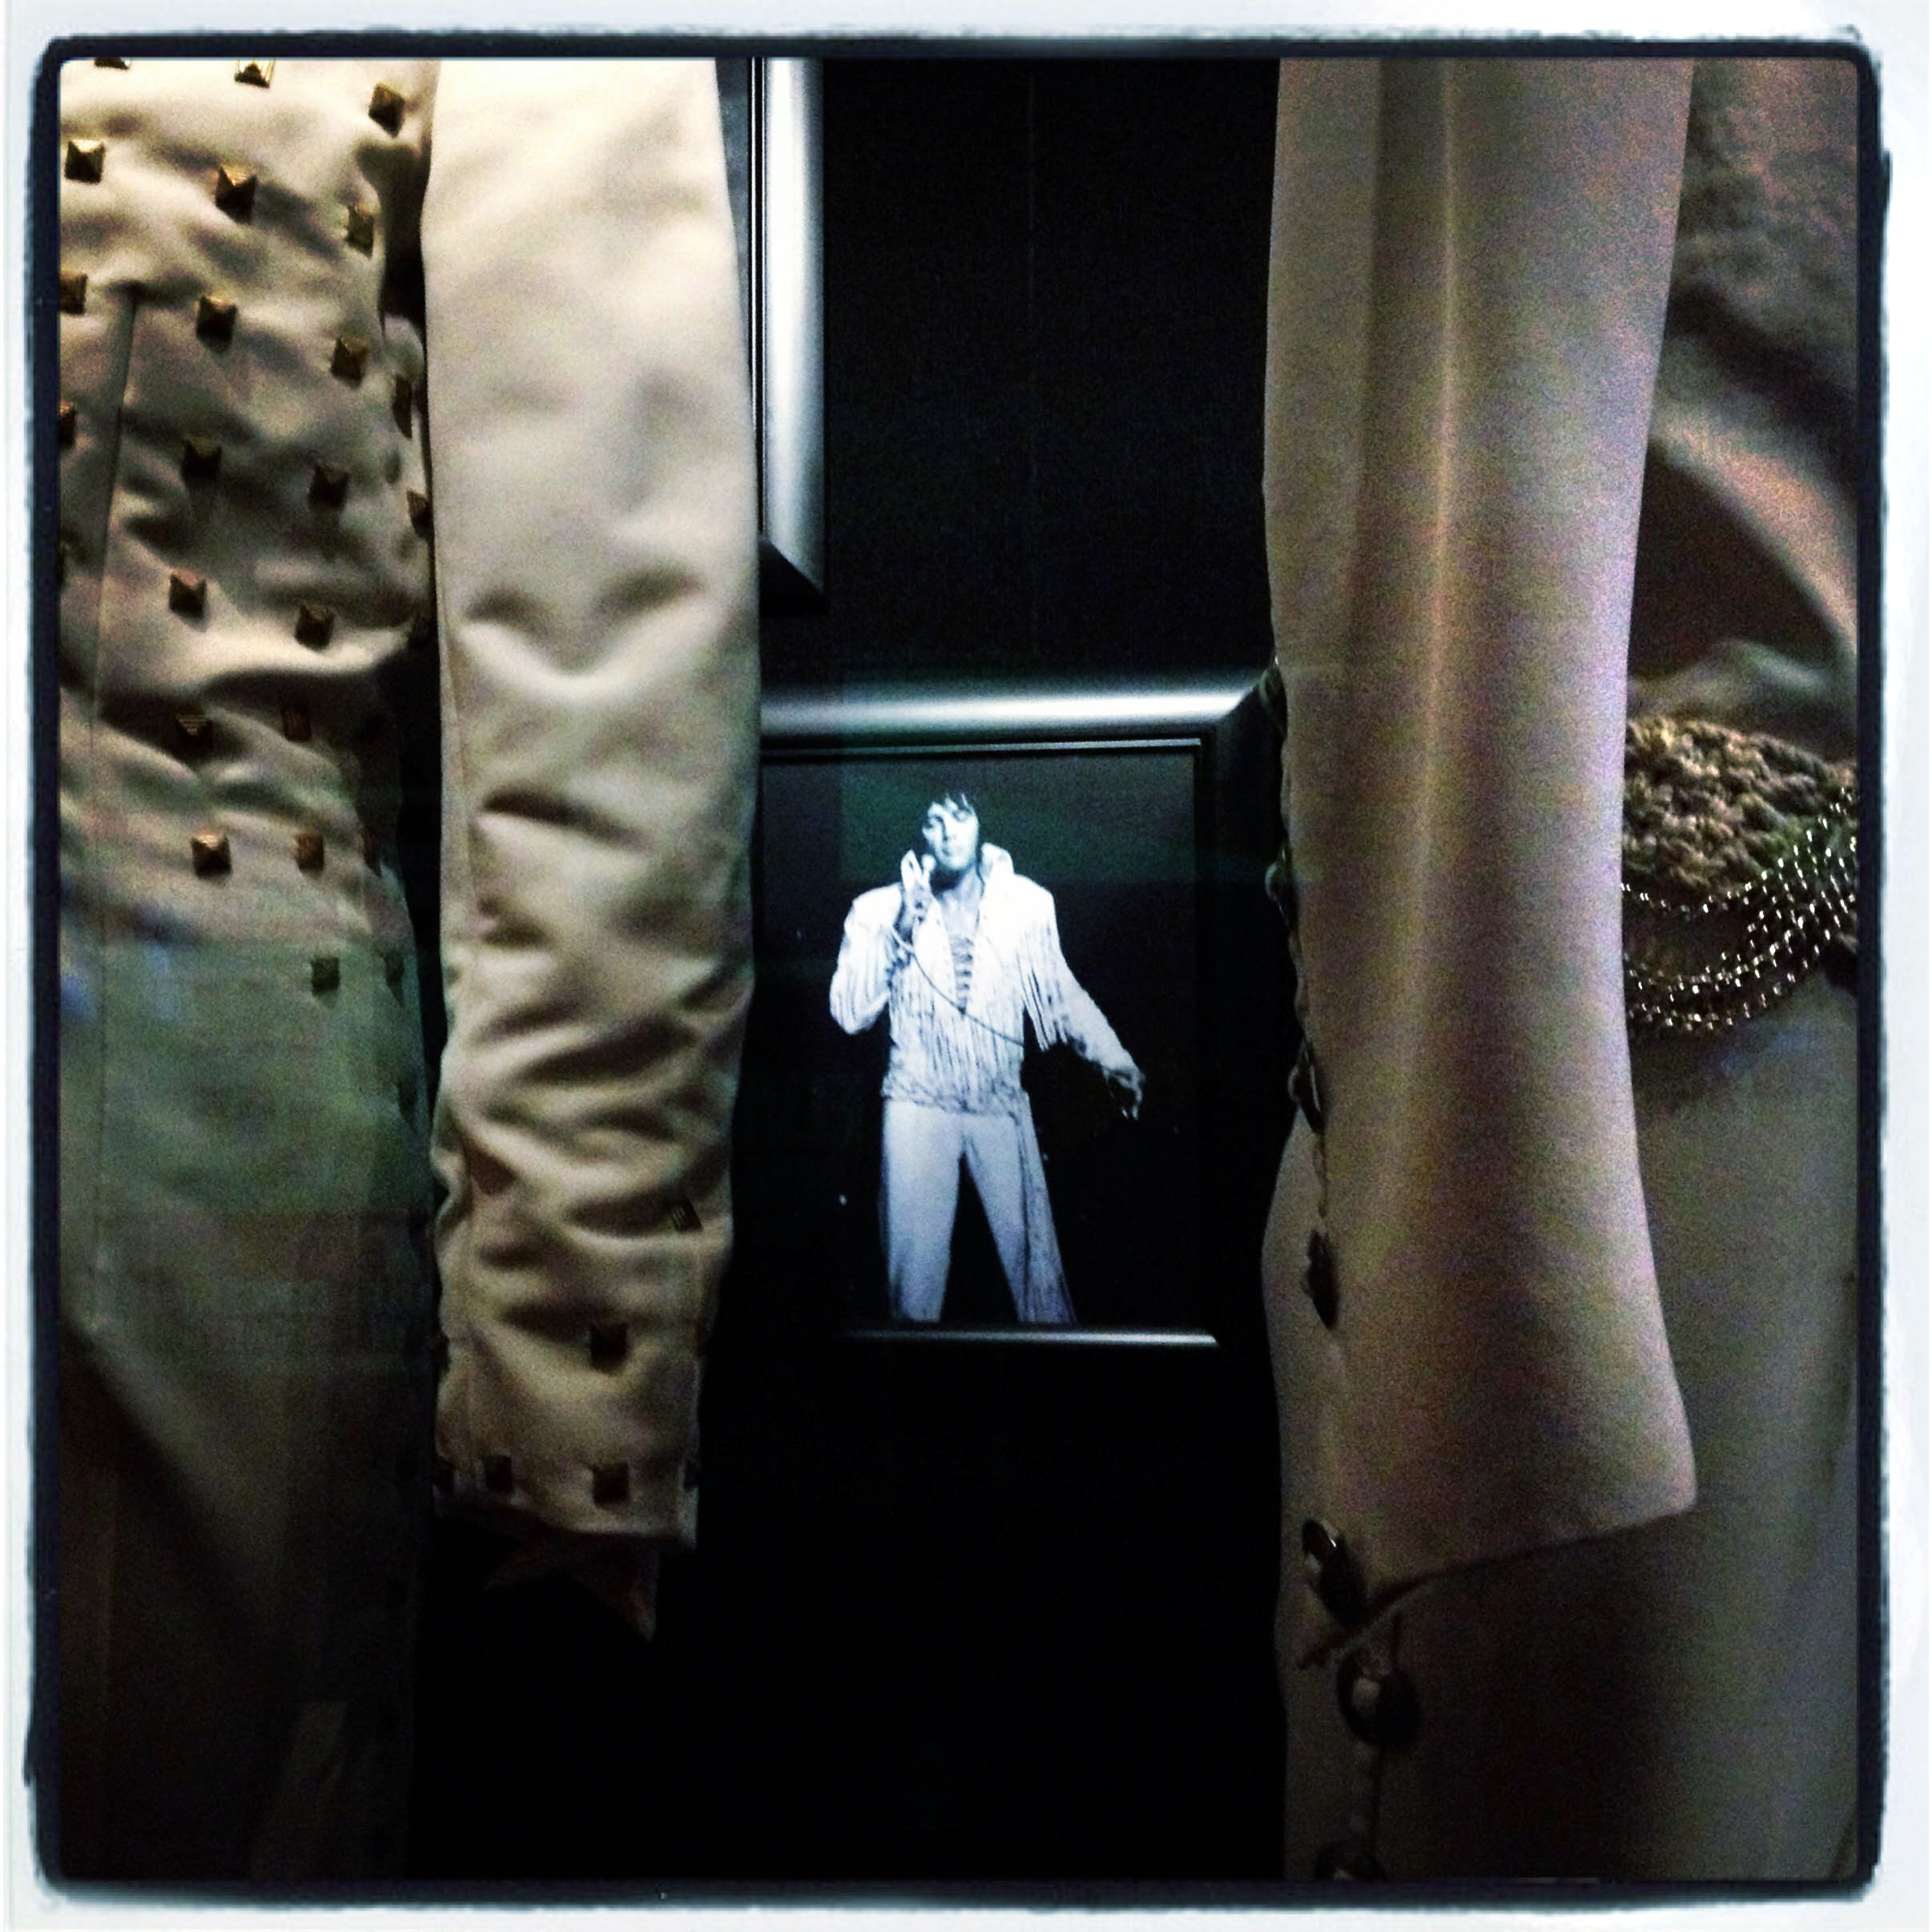 MEMPHIS, TN 01/03/14 A ghost-like image of Elvis is visible between two of his famous white studded performance outfits at Graceland. CLOE POISSON|cpoisson@courant.com